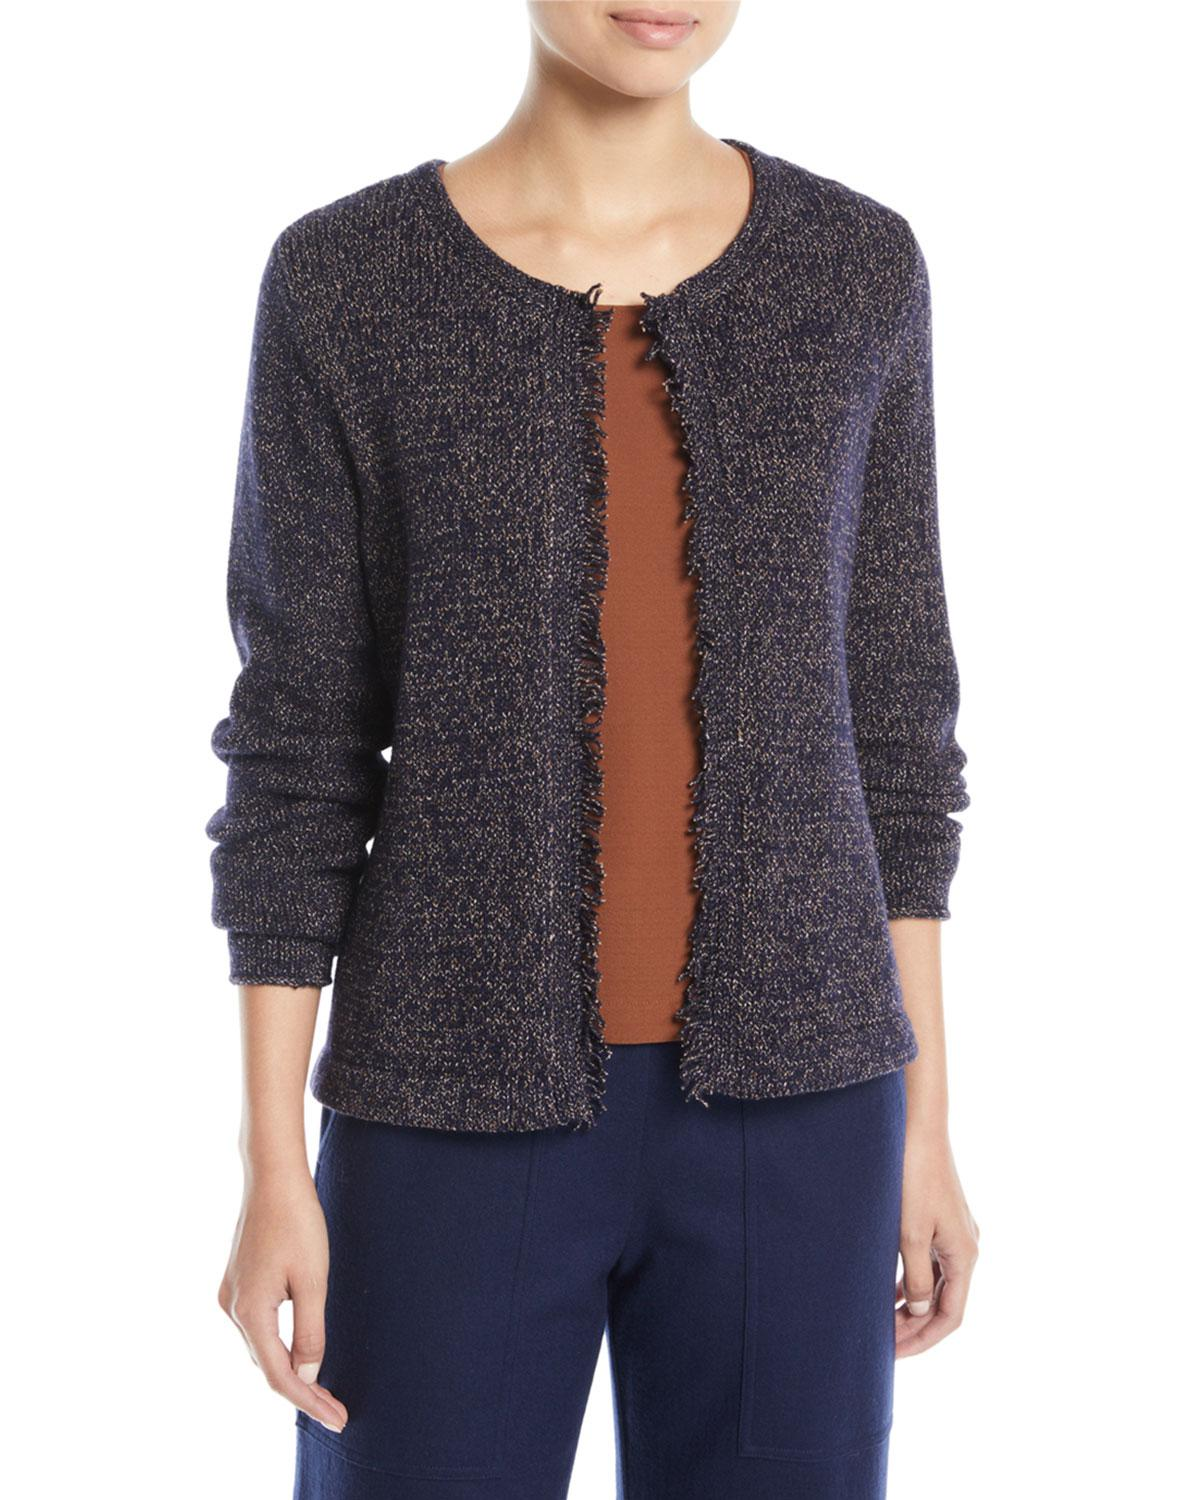 b823ec059e4 Eileen Fisher. Women's Blue Fringed-edge Round-neck Cardigan. $248 $121  From Neiman Marcus